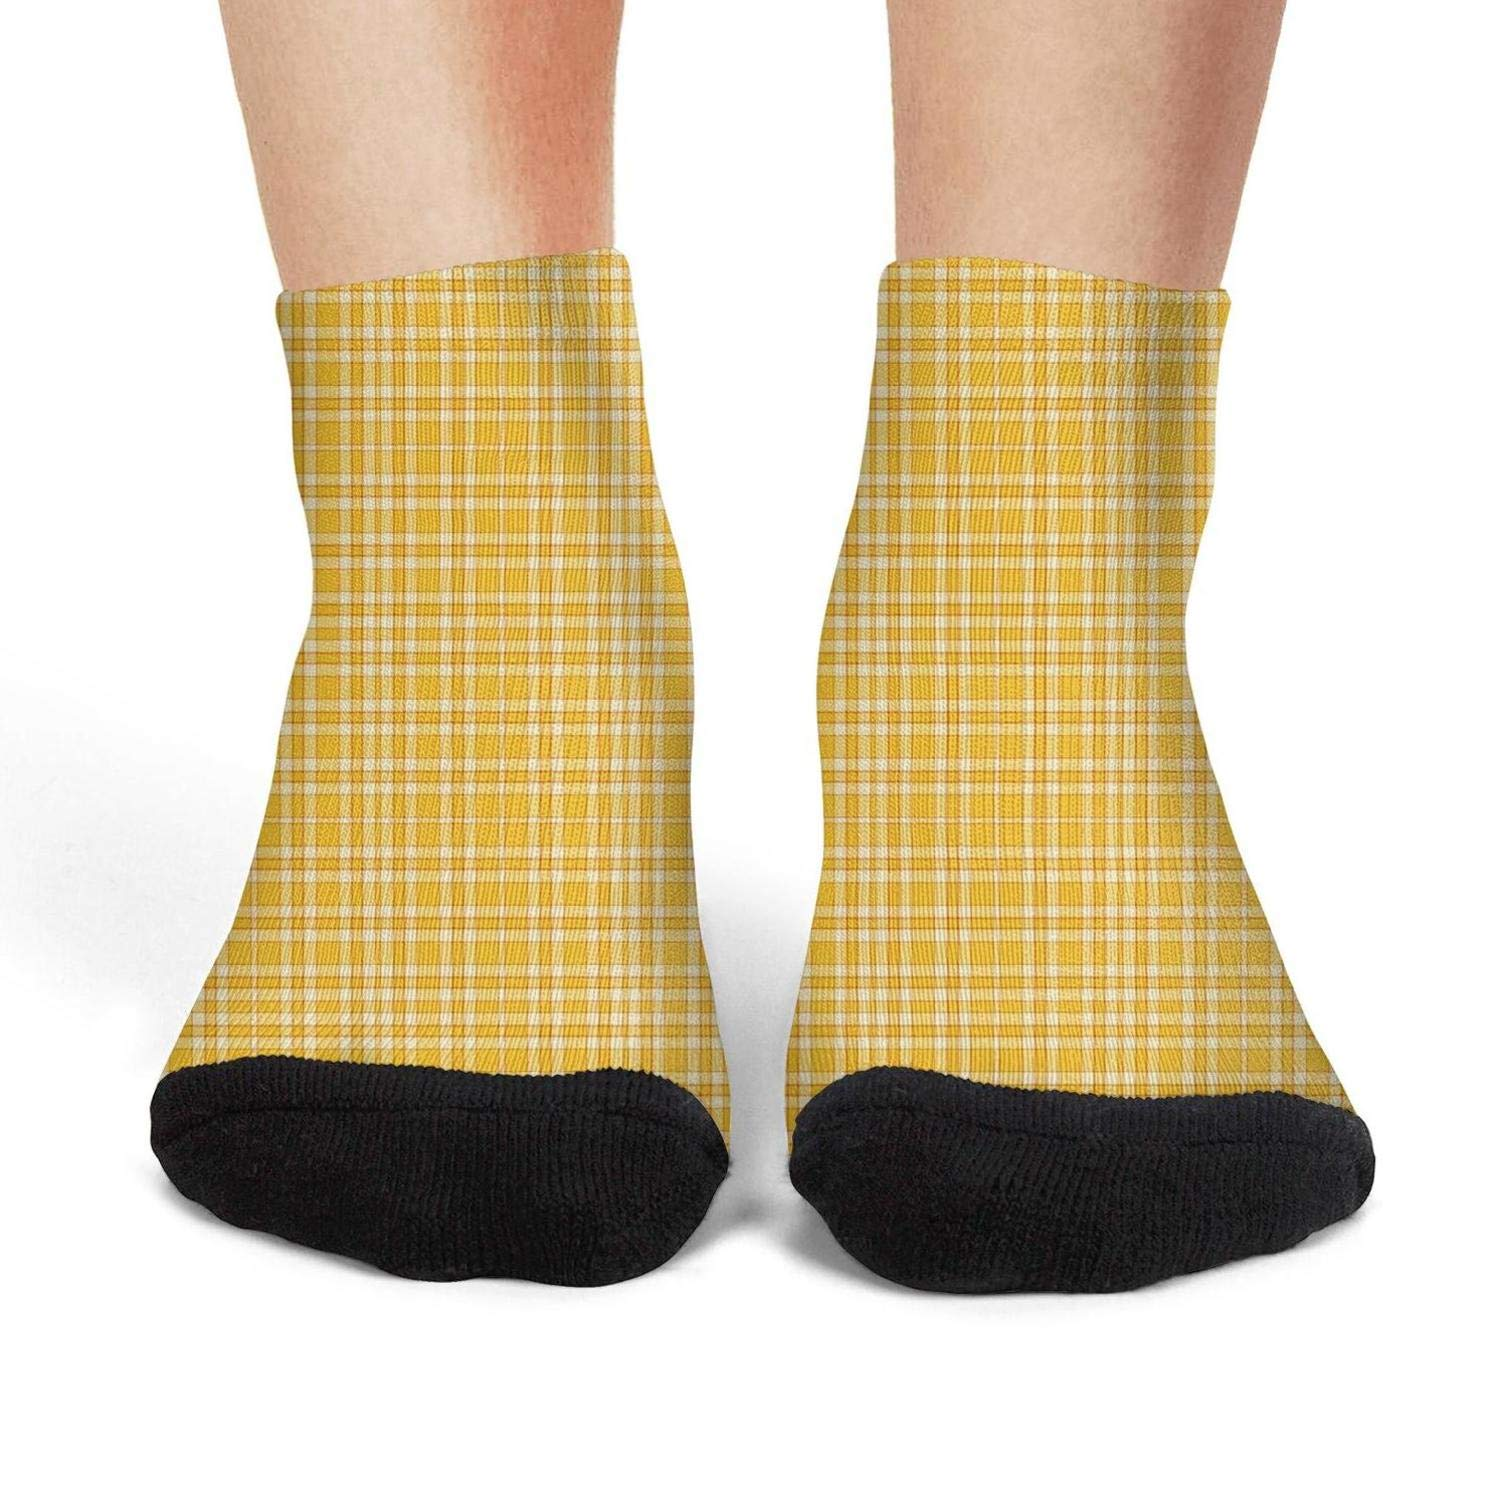 Mens athletic low cut Ankle sock Yellow Checkered lattice panels simple patterns Non-Slip Lightweight Short Sock